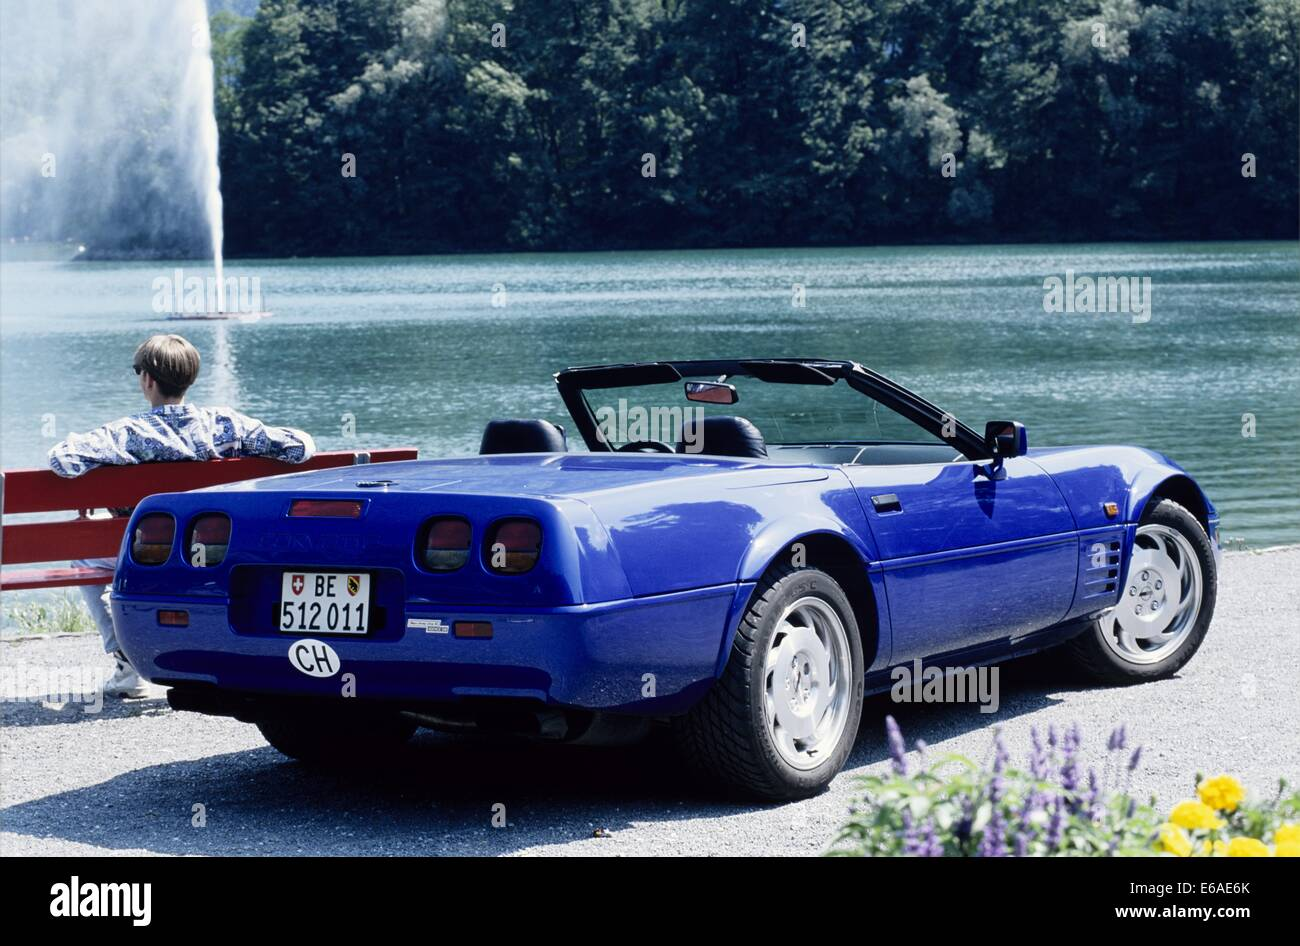 Chevrolet Corvette C4 fourth generation - 1994 Model Year in